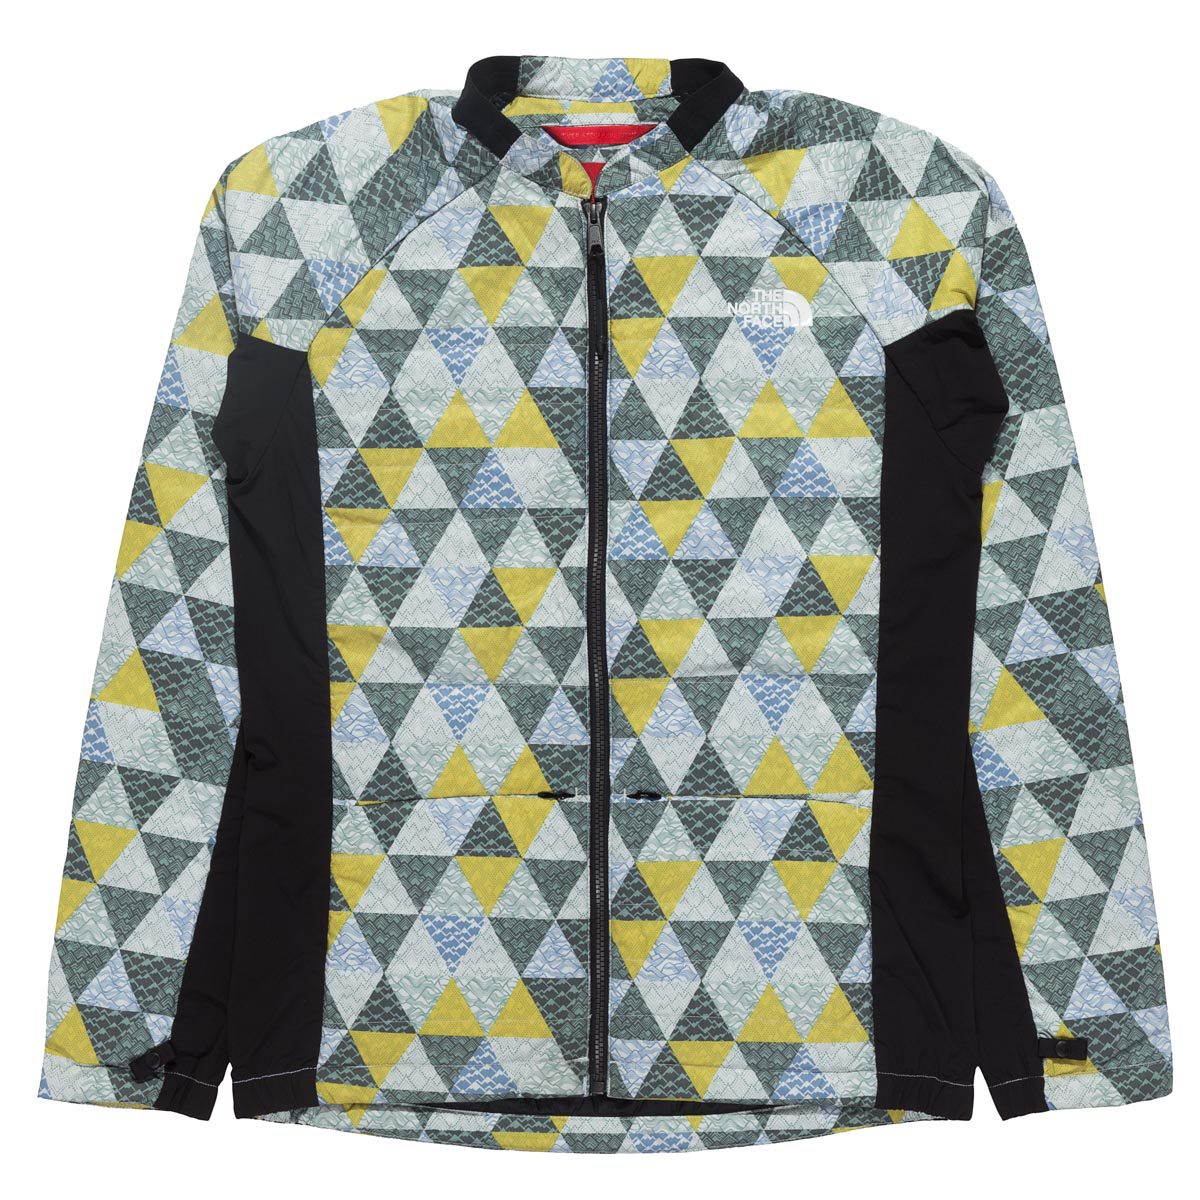 THE-NORTH-FACE-M-DENALI-INSULATED-JACKET-ONE-COLOUR-WAY2.jpg